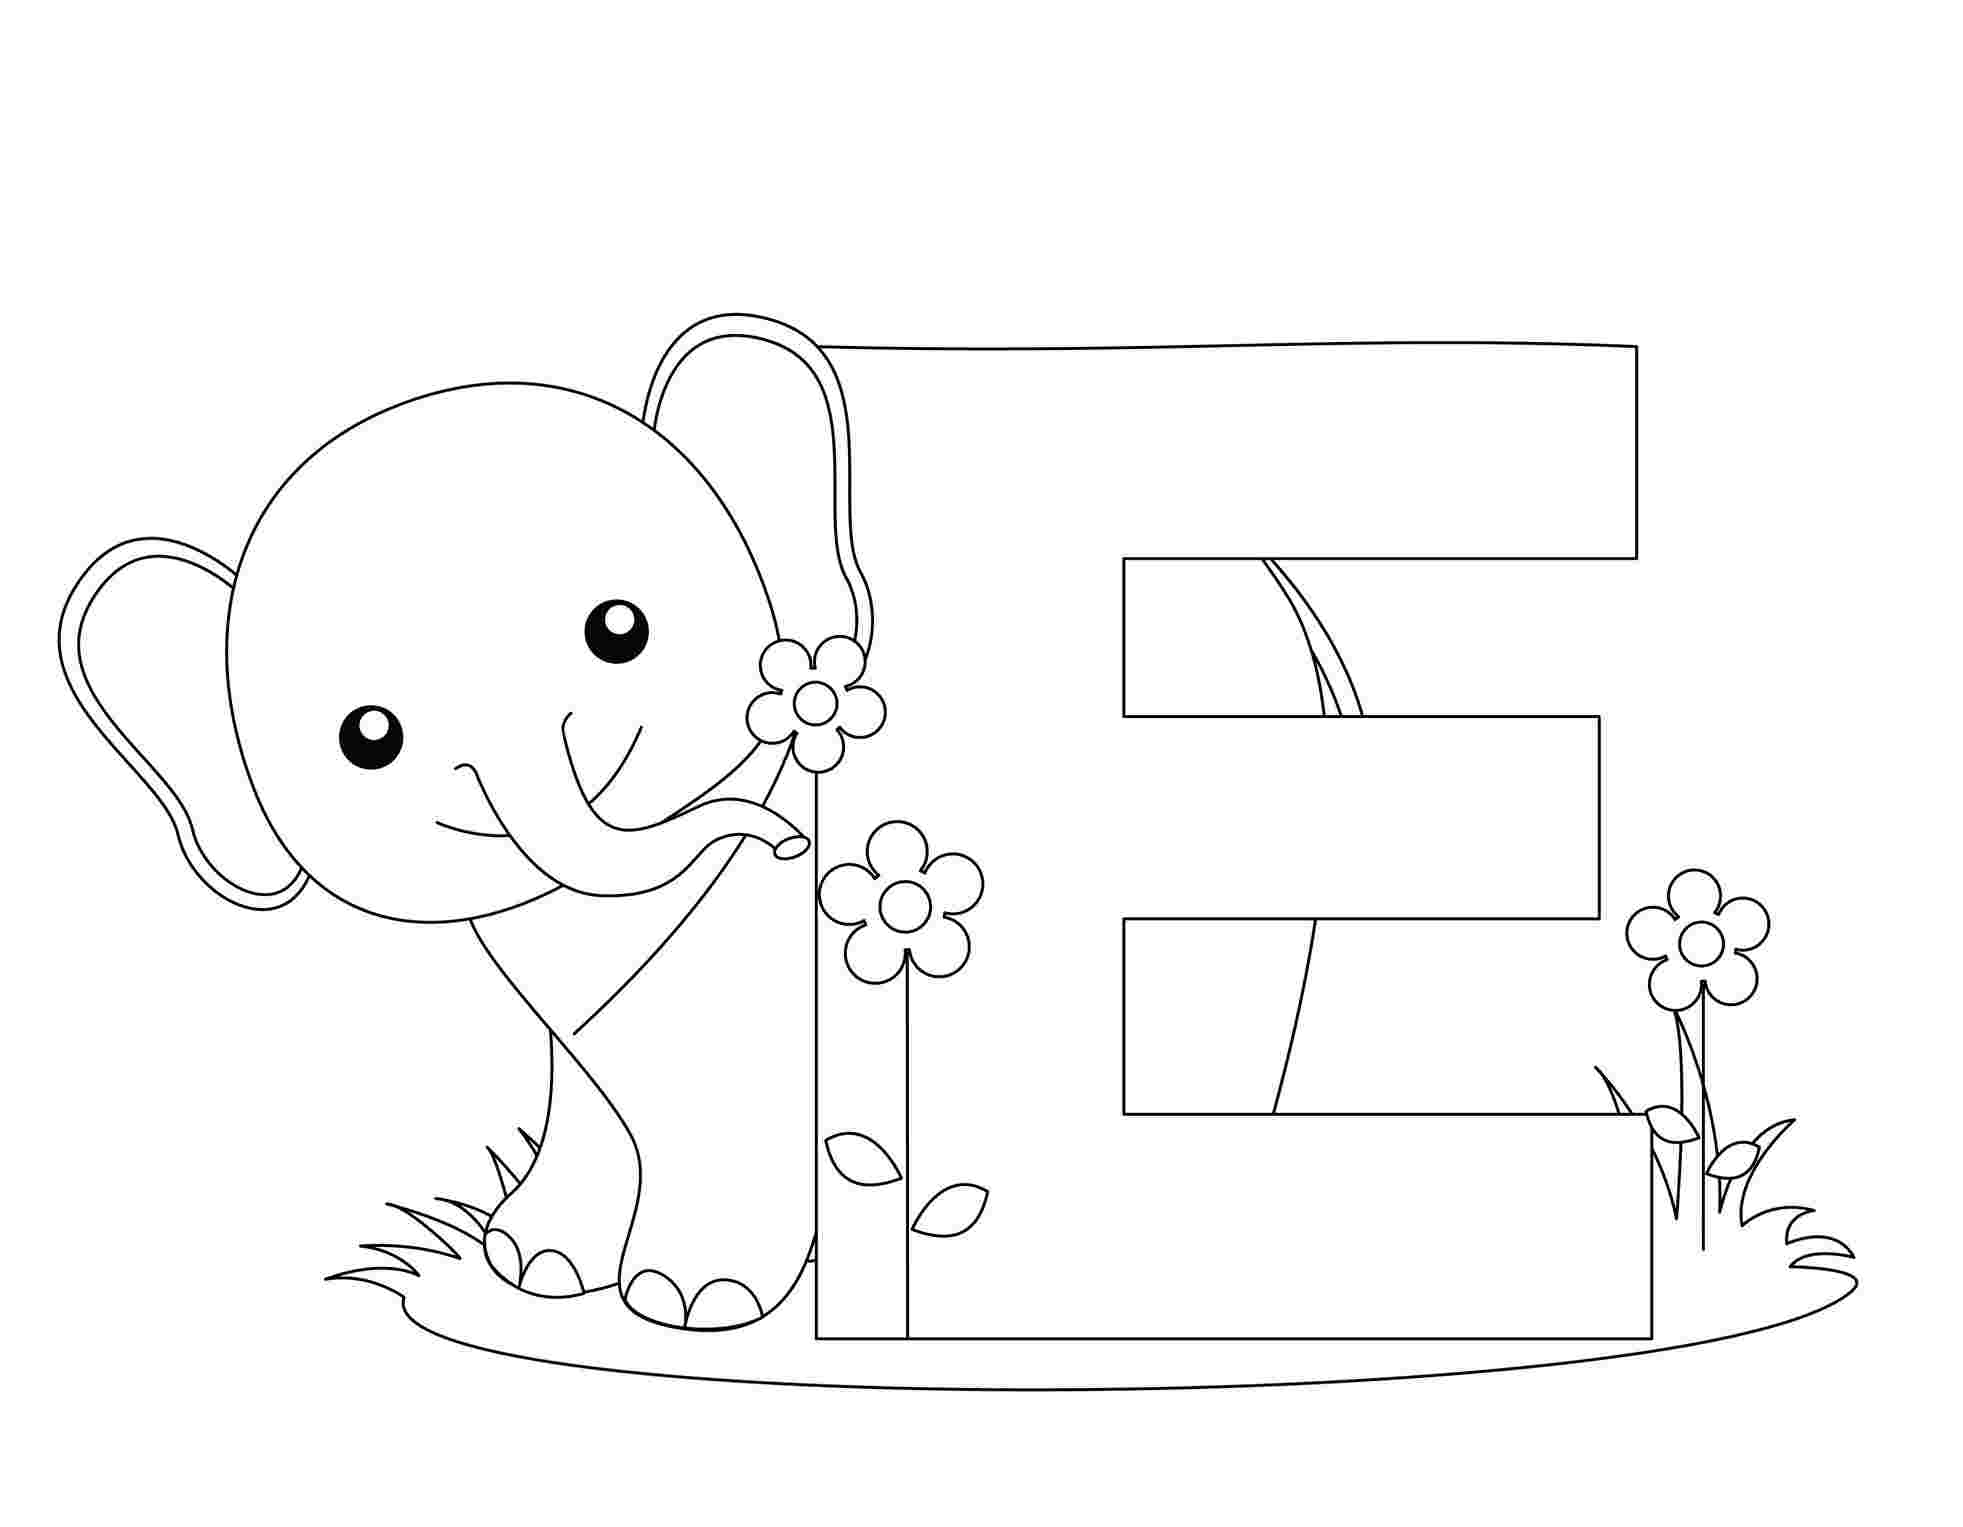 Colouring Pages Letter S Free Printable Alphabet Coloring within Alphabet Colouring Worksheets